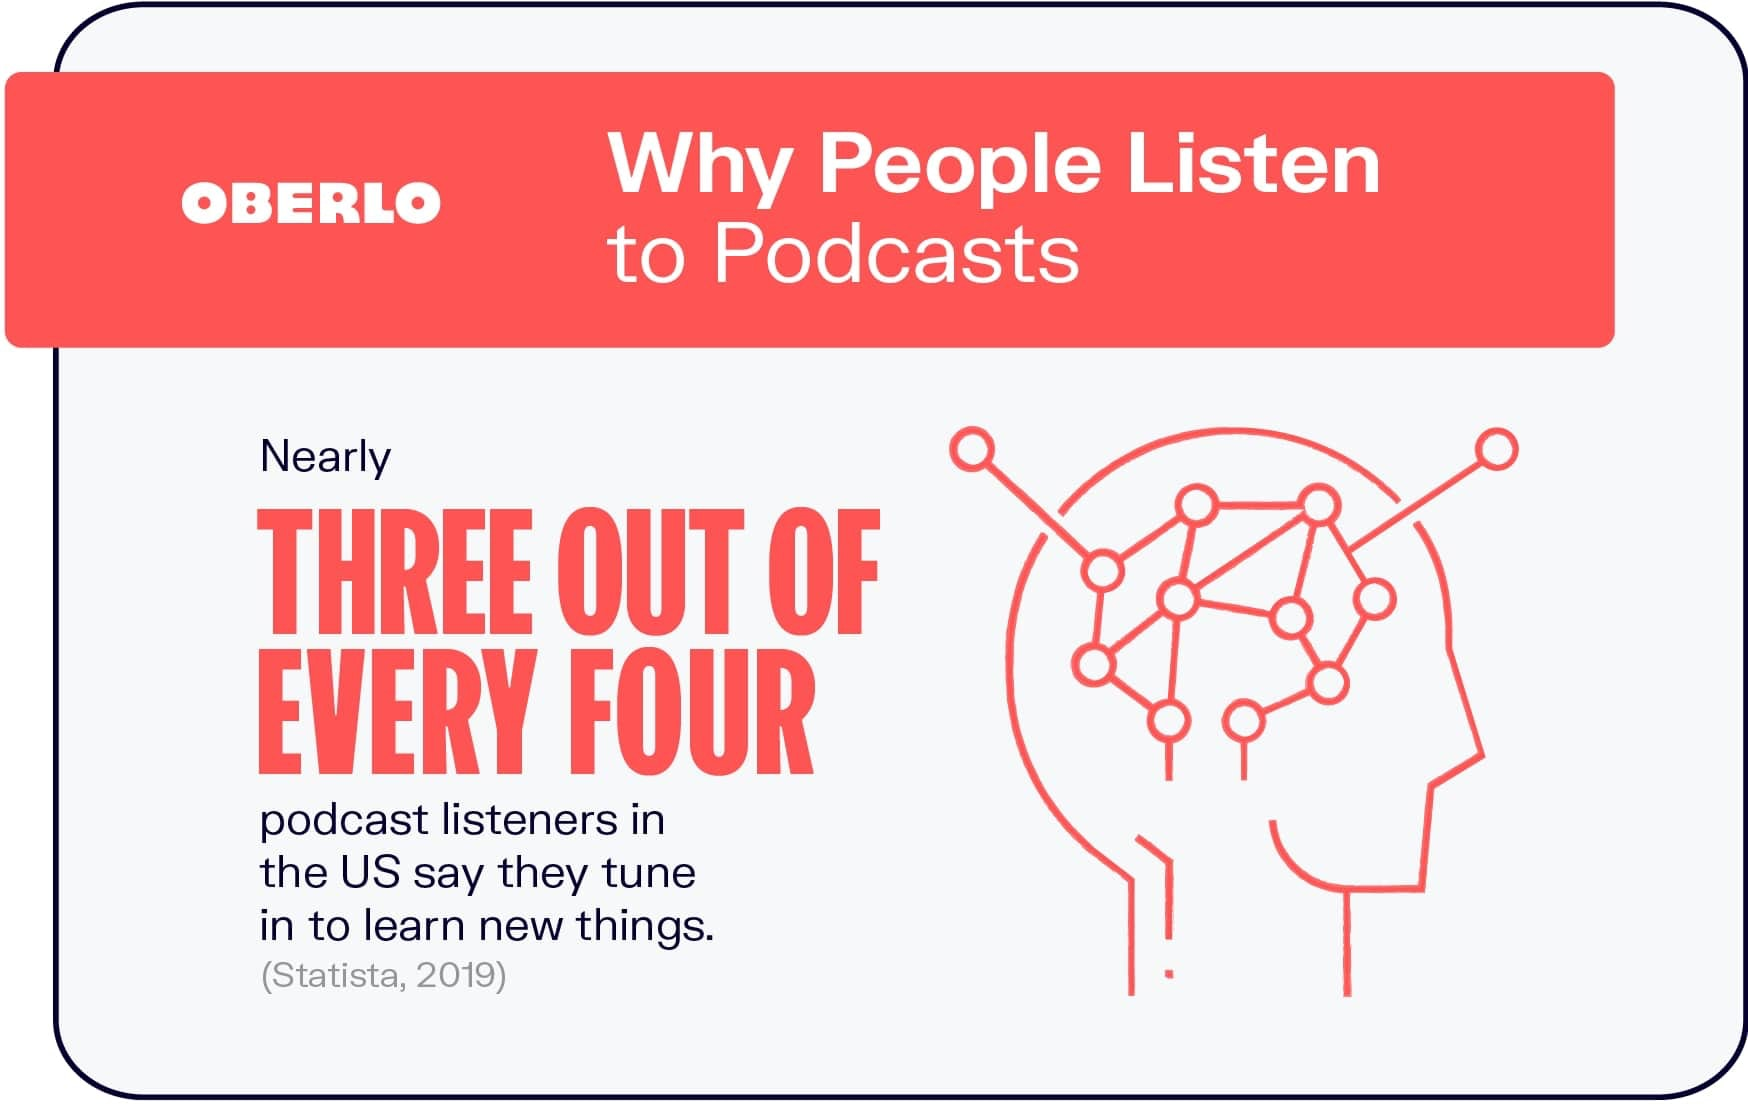 Why People Listen to Podcasts